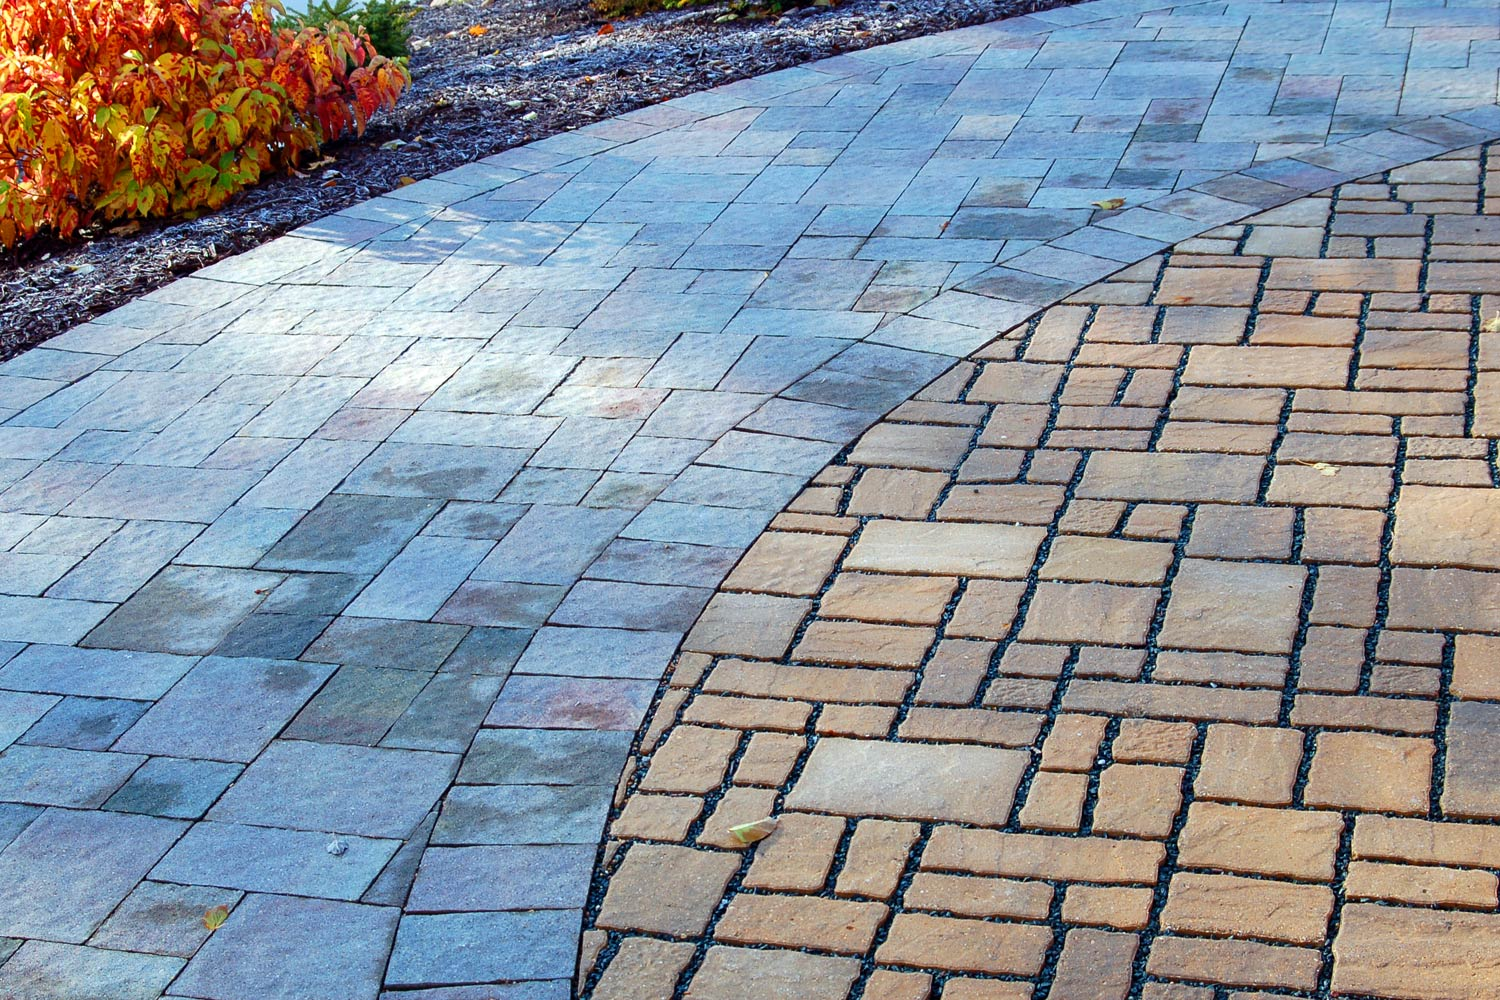 up close view of permeable pavers